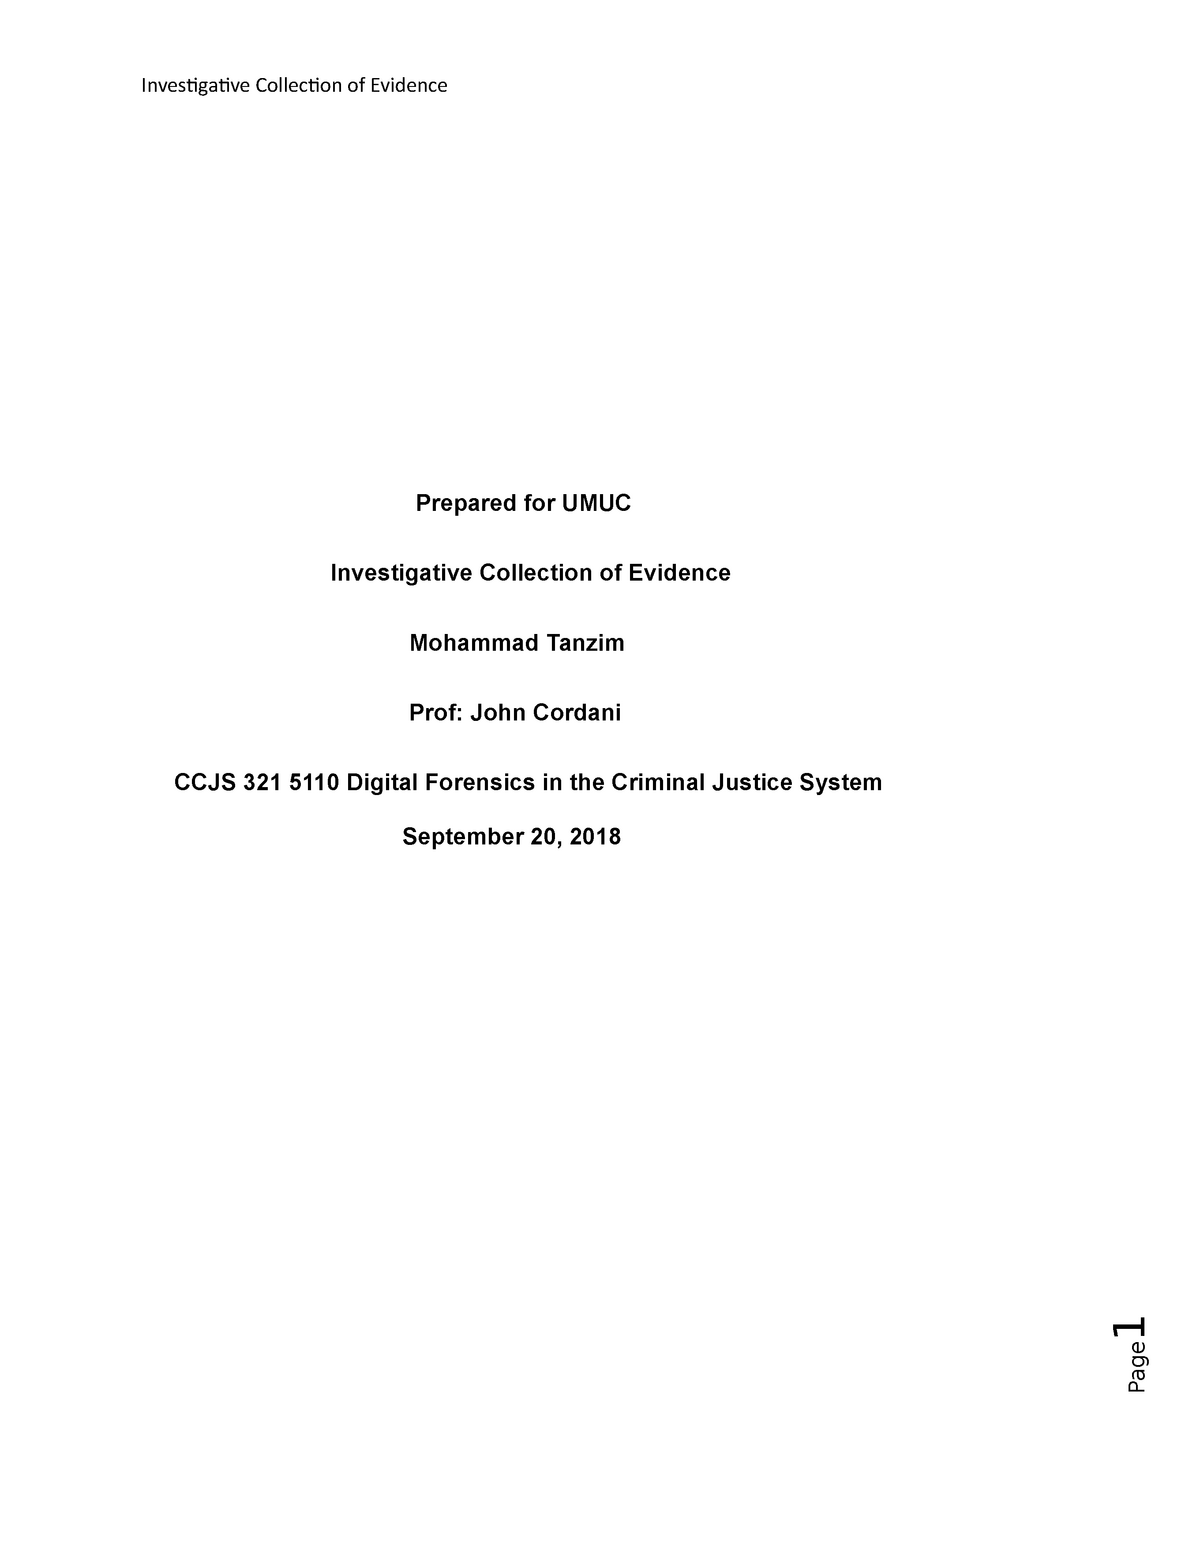 Project 2 ccjs321 - CCJS 321: Digital Forensics in the